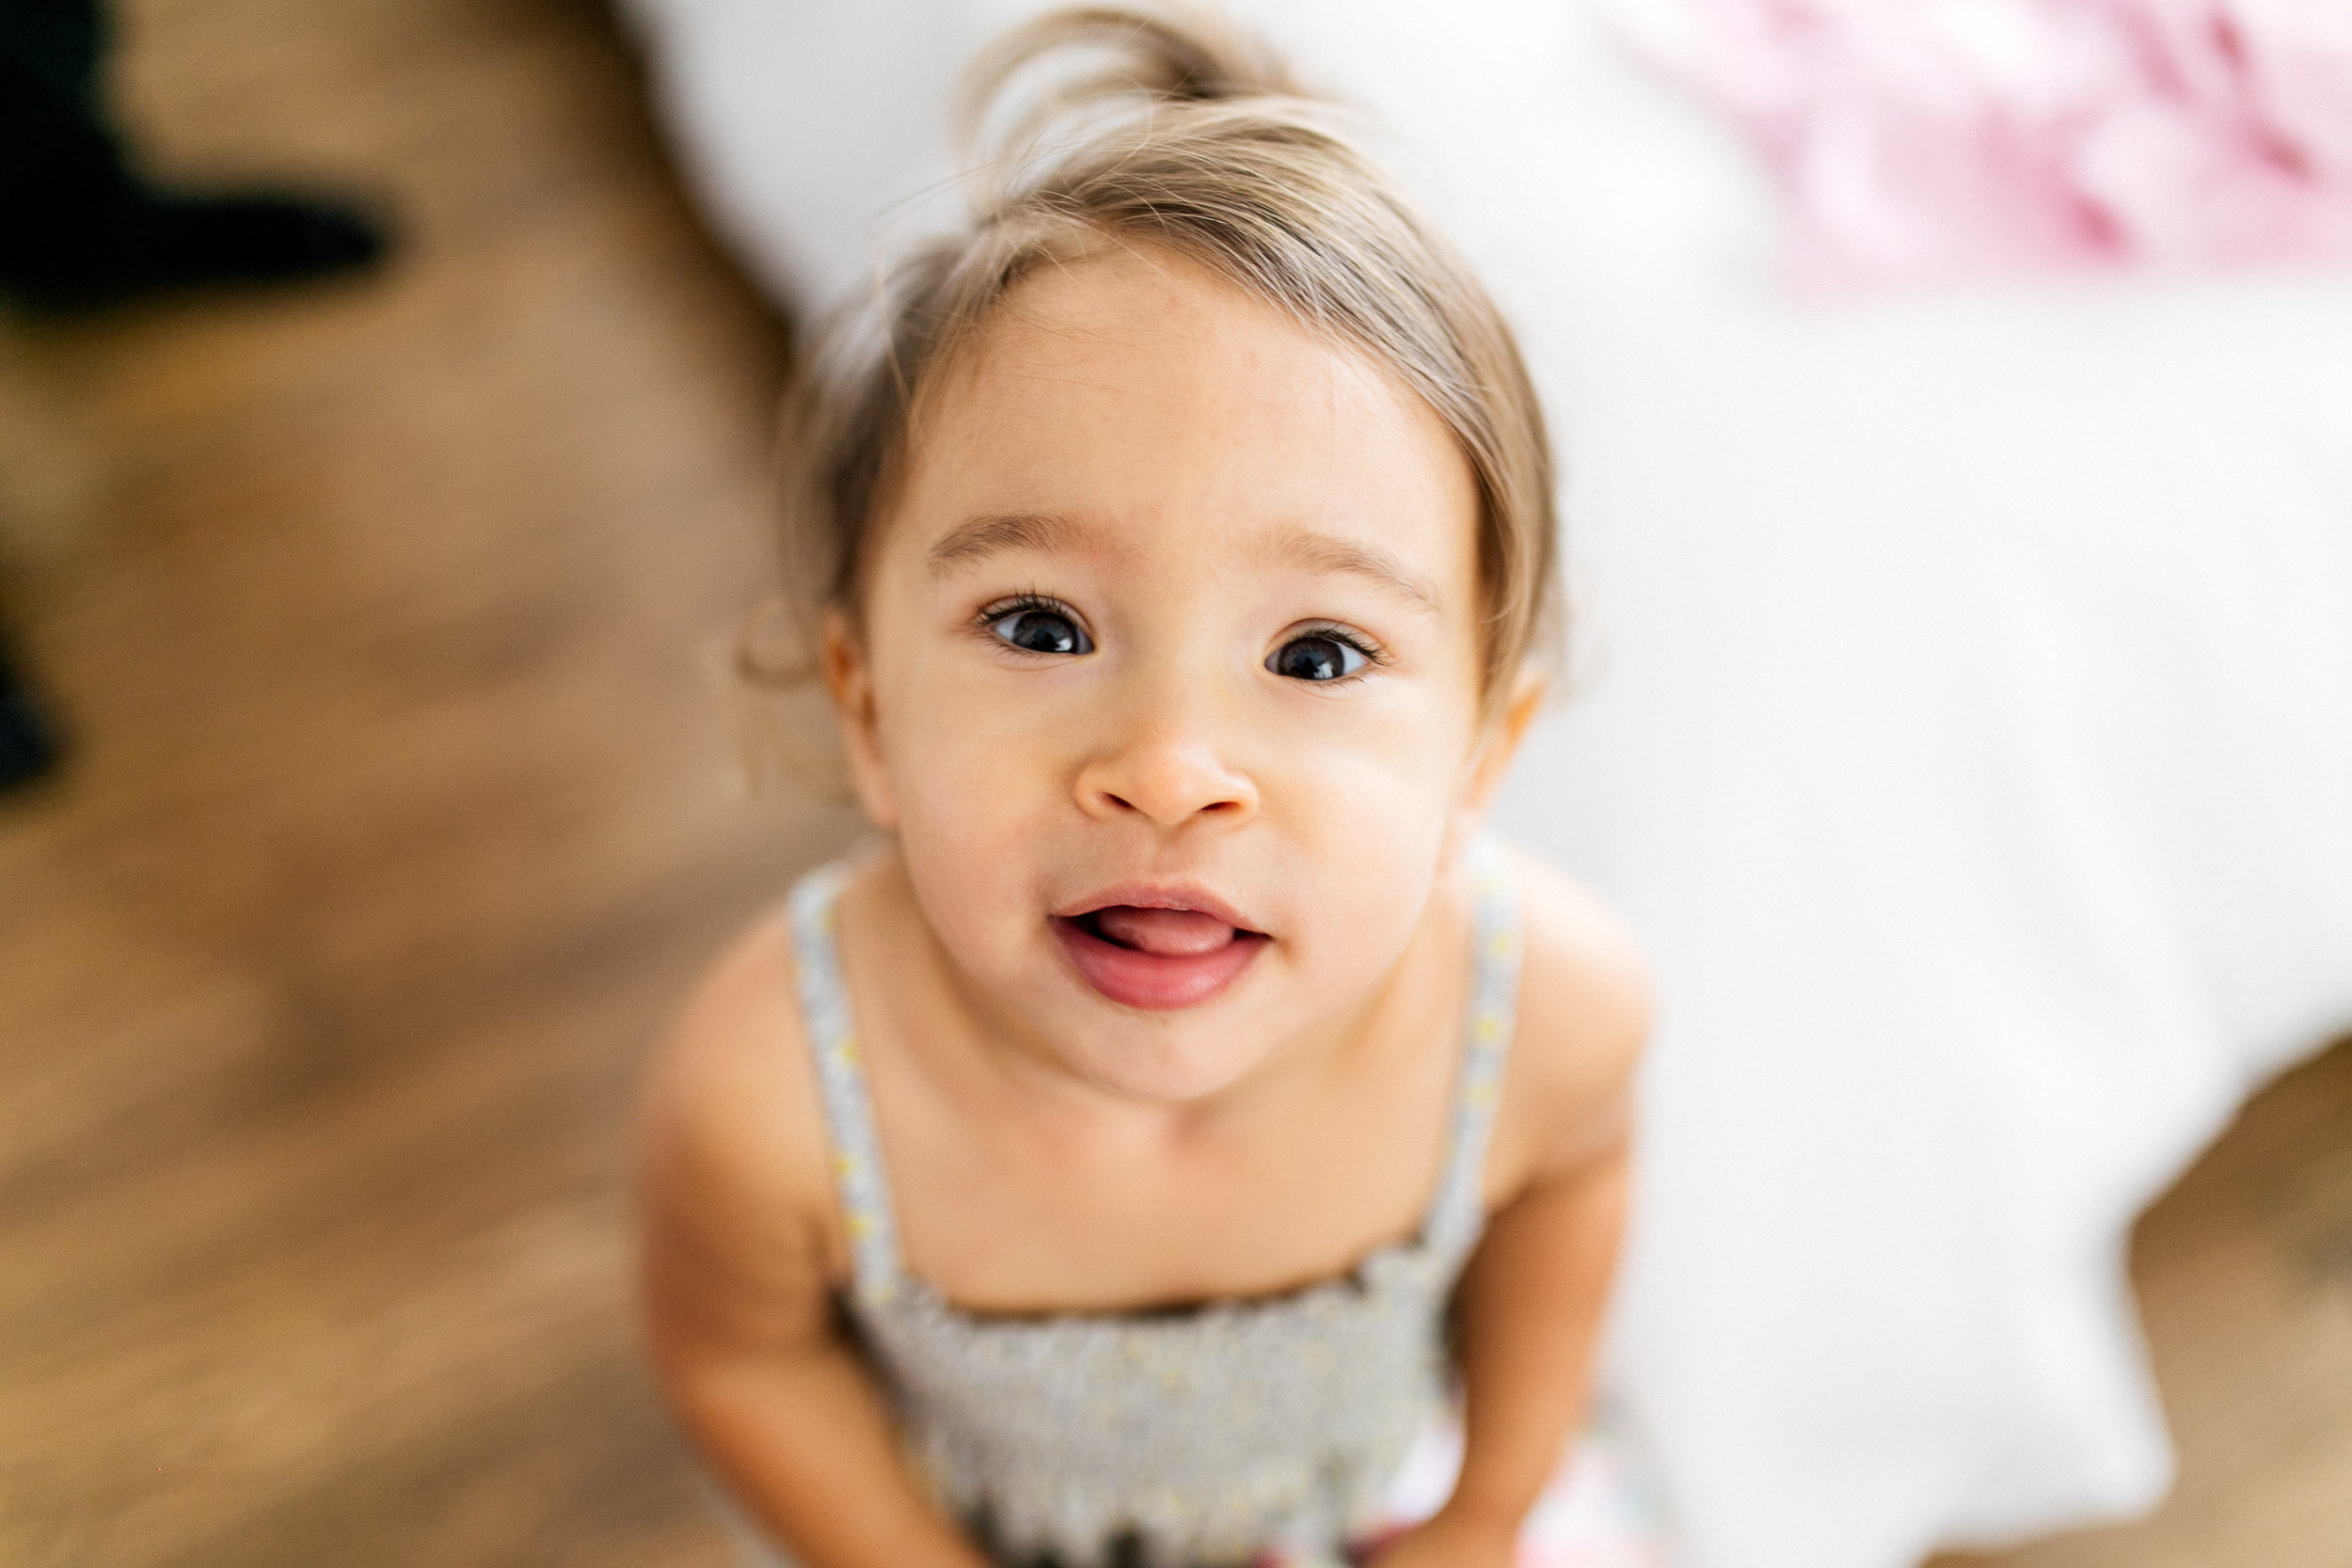 Newborn Family Session, Natural Light in Home, toddler in house lifestyle | Chelsea Macor Photography Seattle WA-19.jpg